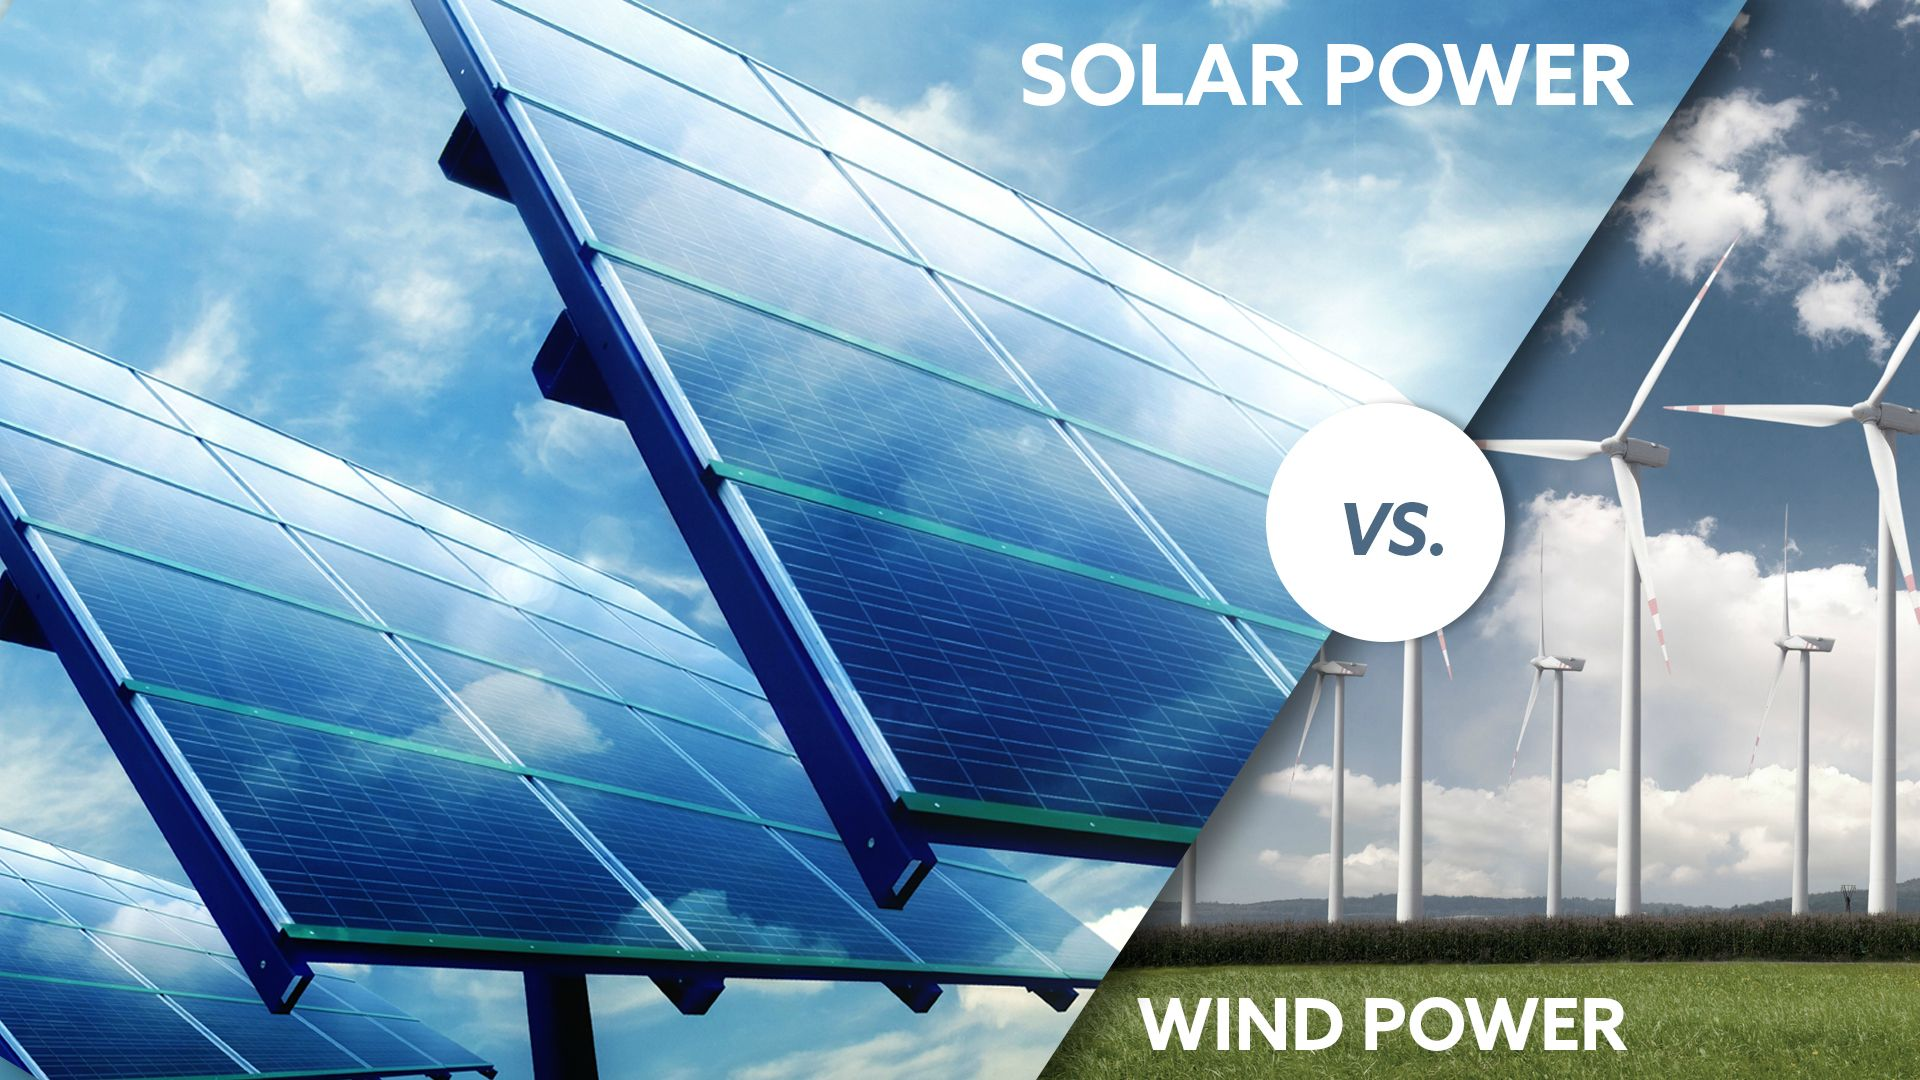 Wind Power vs Solar Power